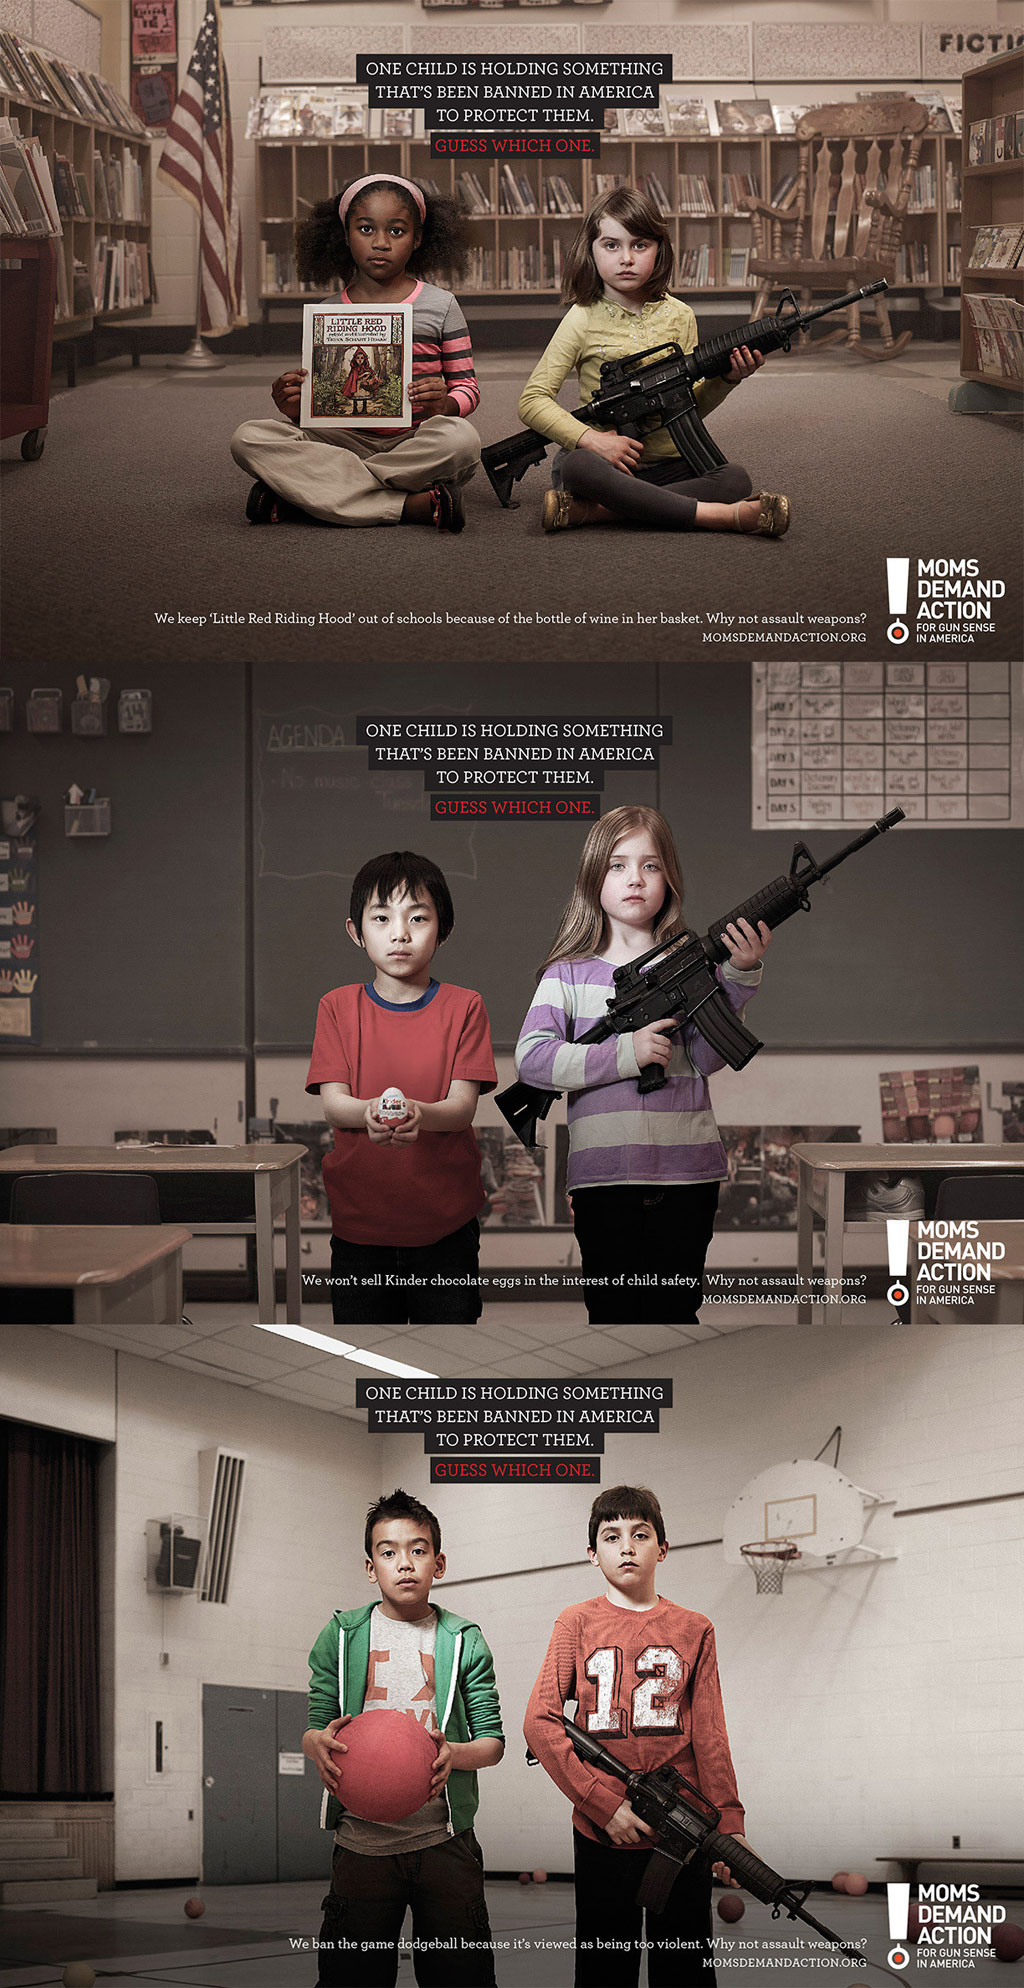 www.momsdemandaction.org